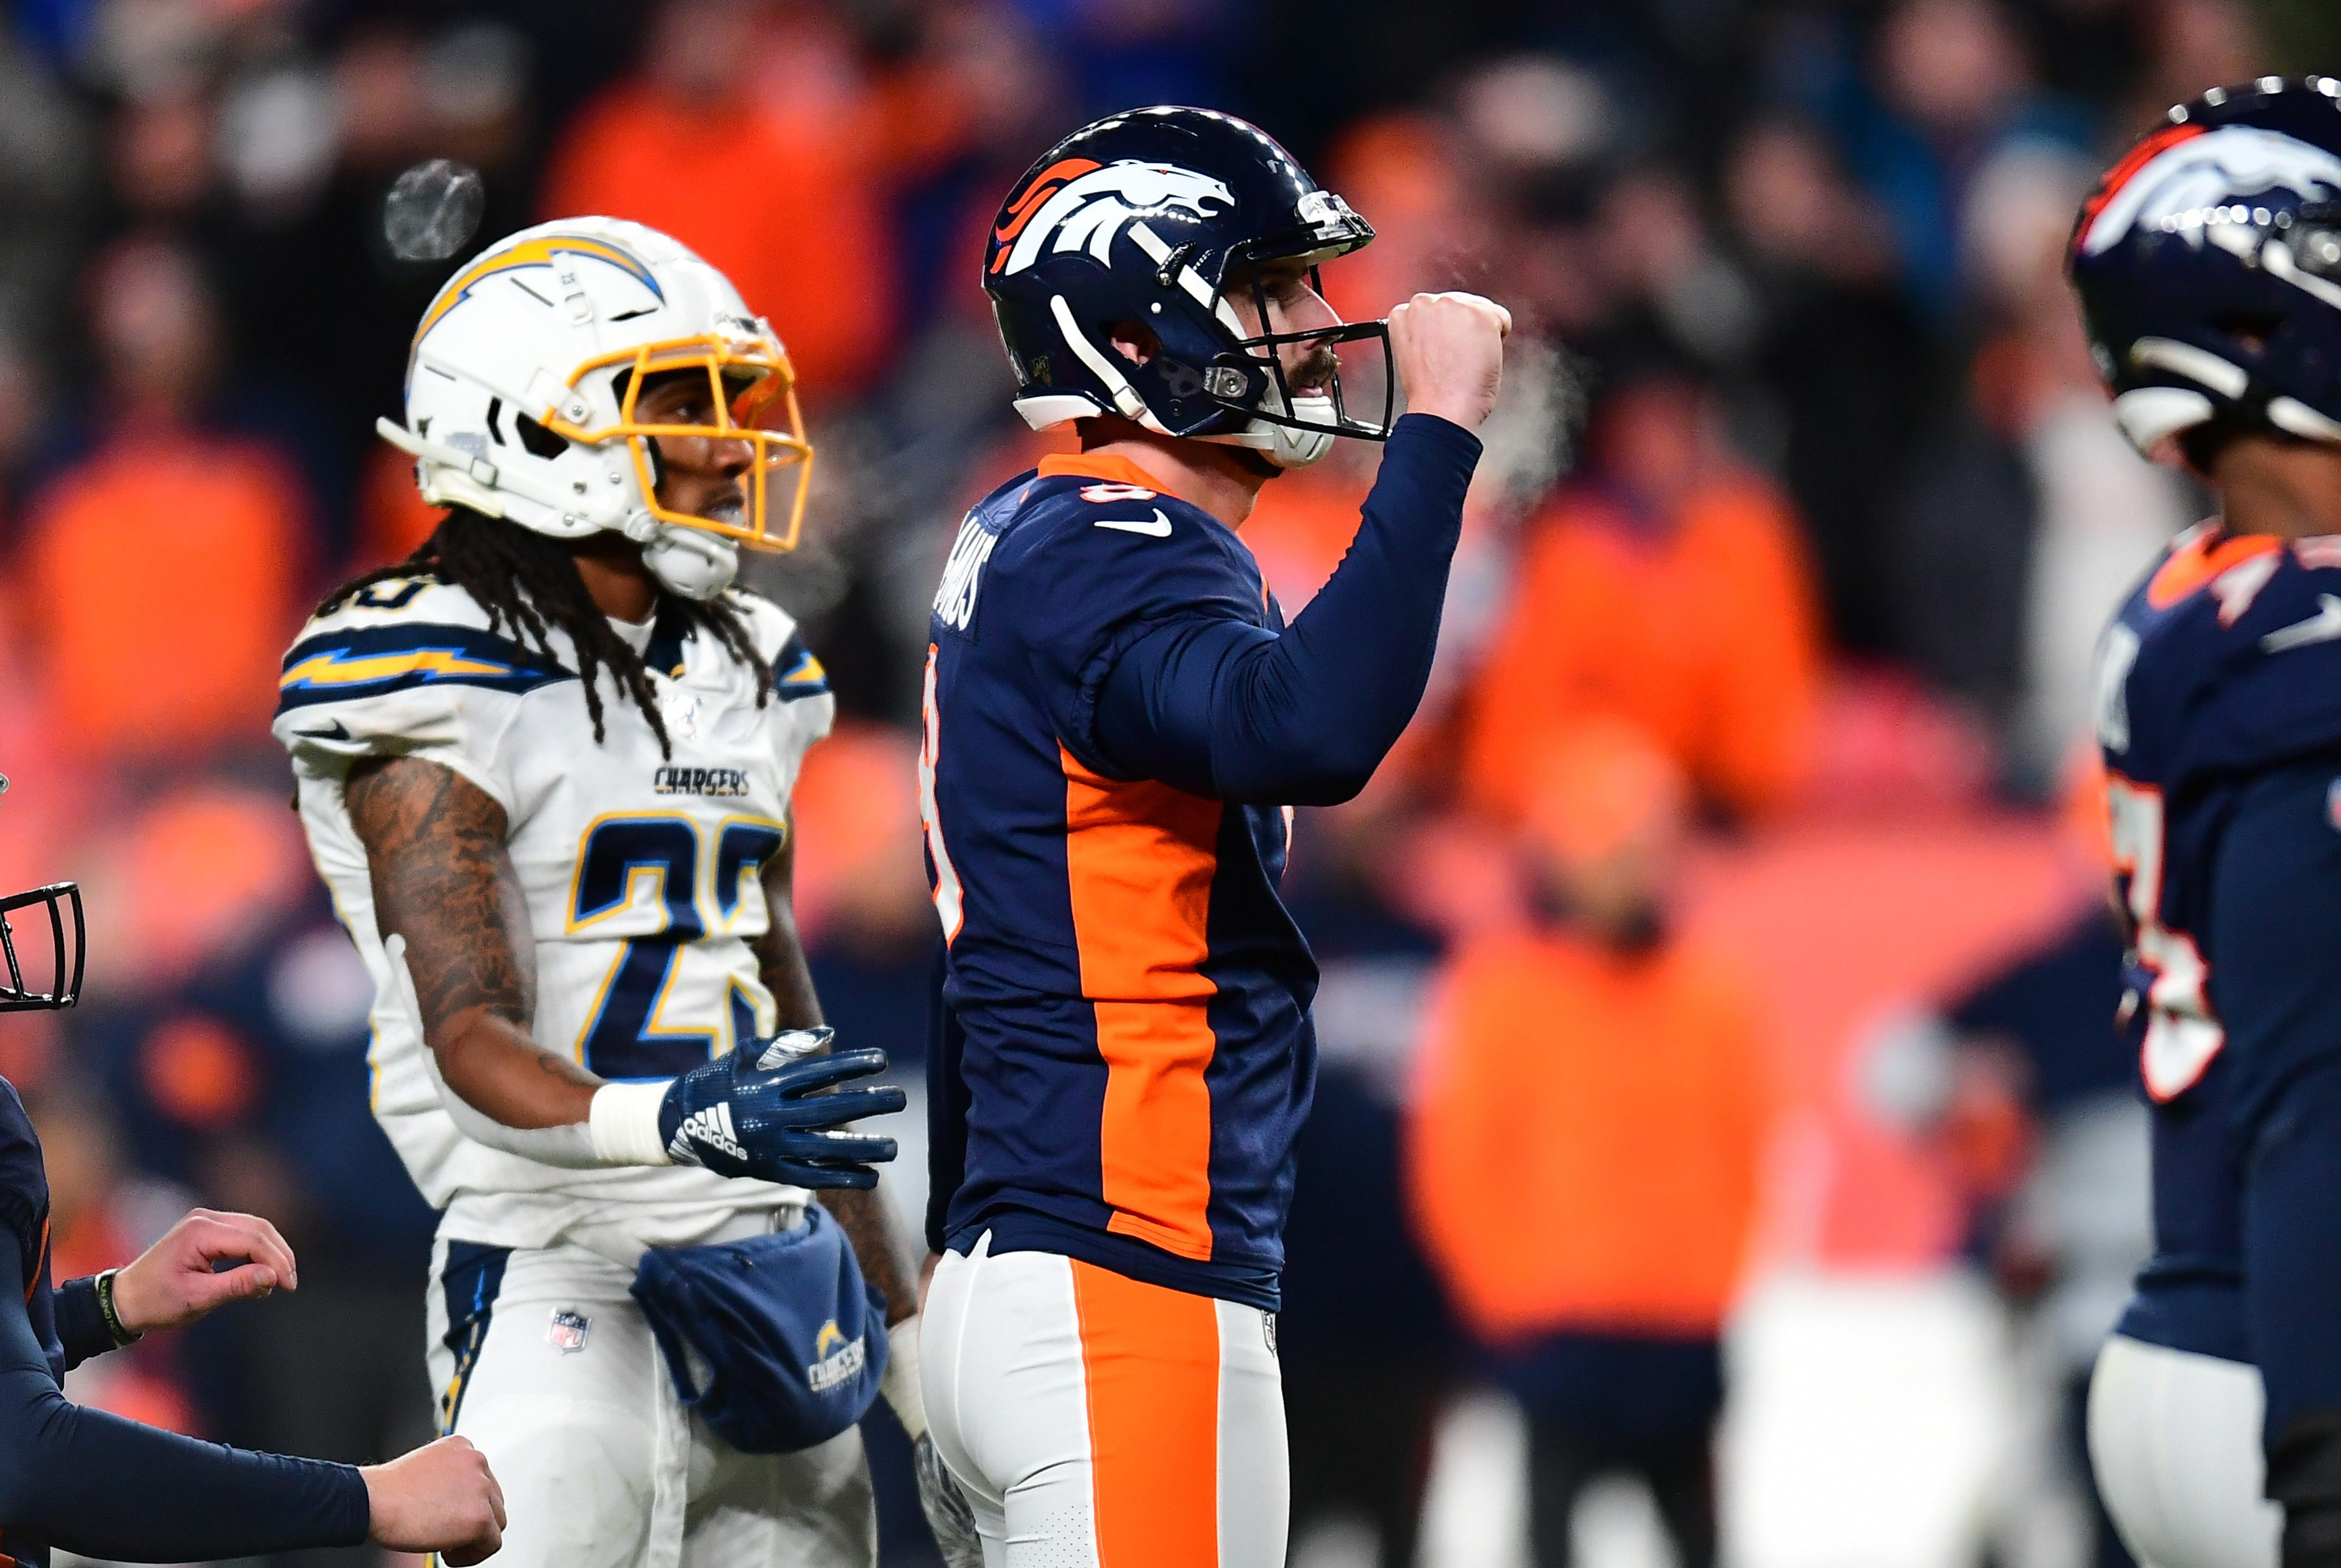 Takeaways from Denver Broncos' Win Over Chargers